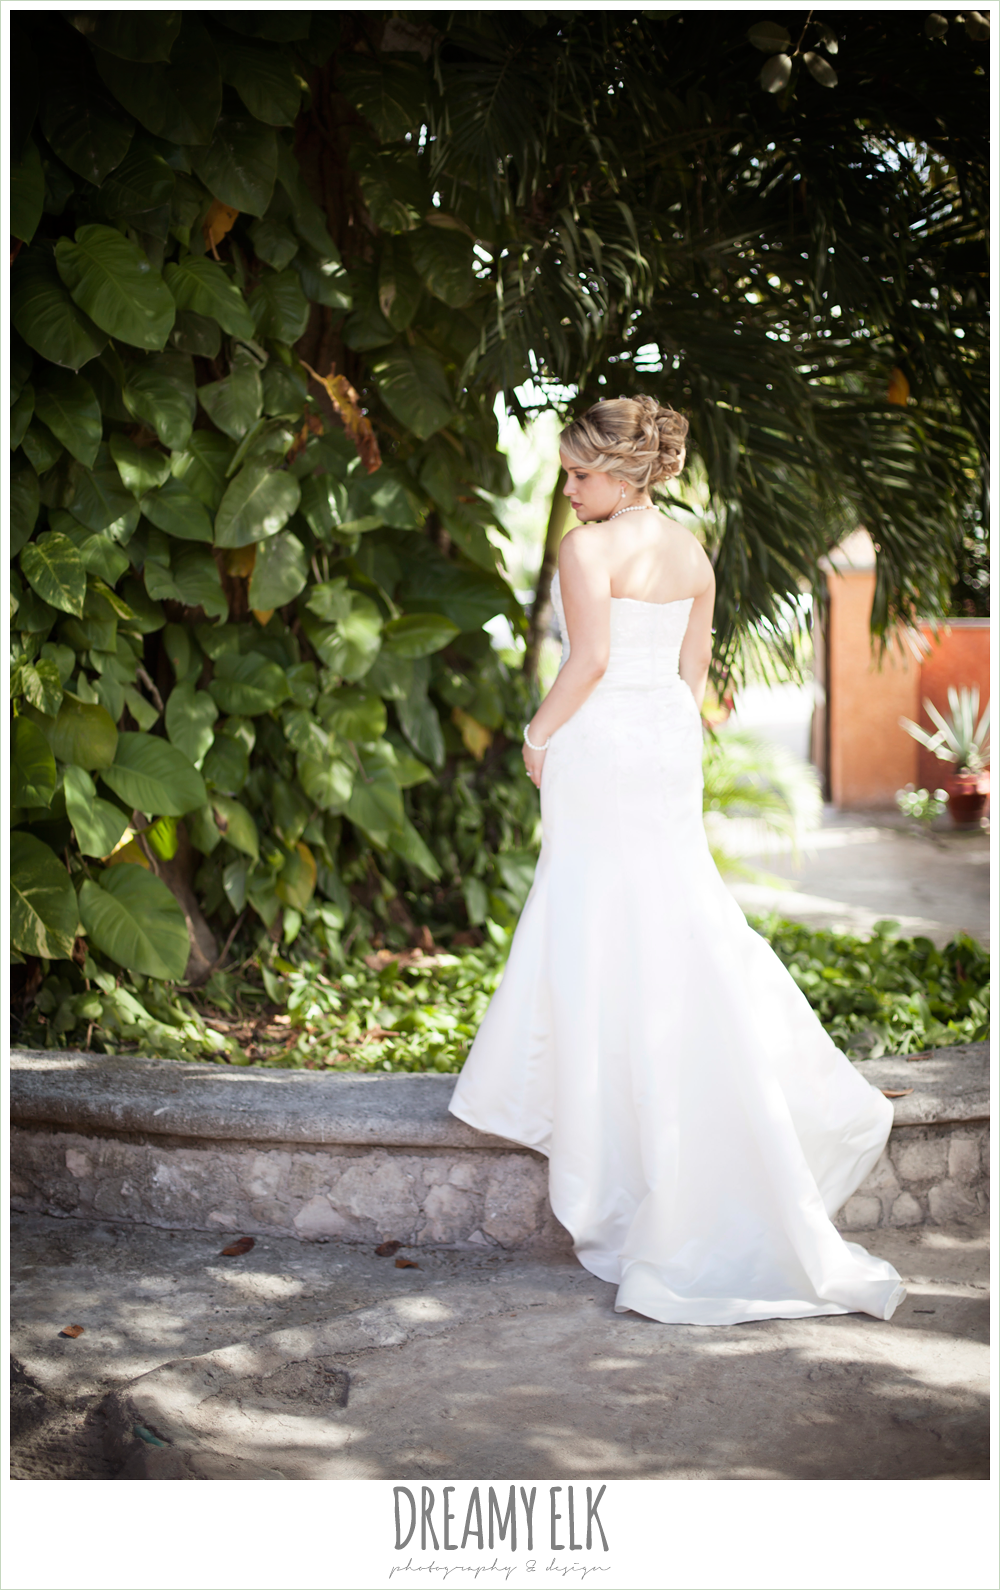 outdoor bridal photo, destination wedding, cozumel {dreamy elk photography and design} photo